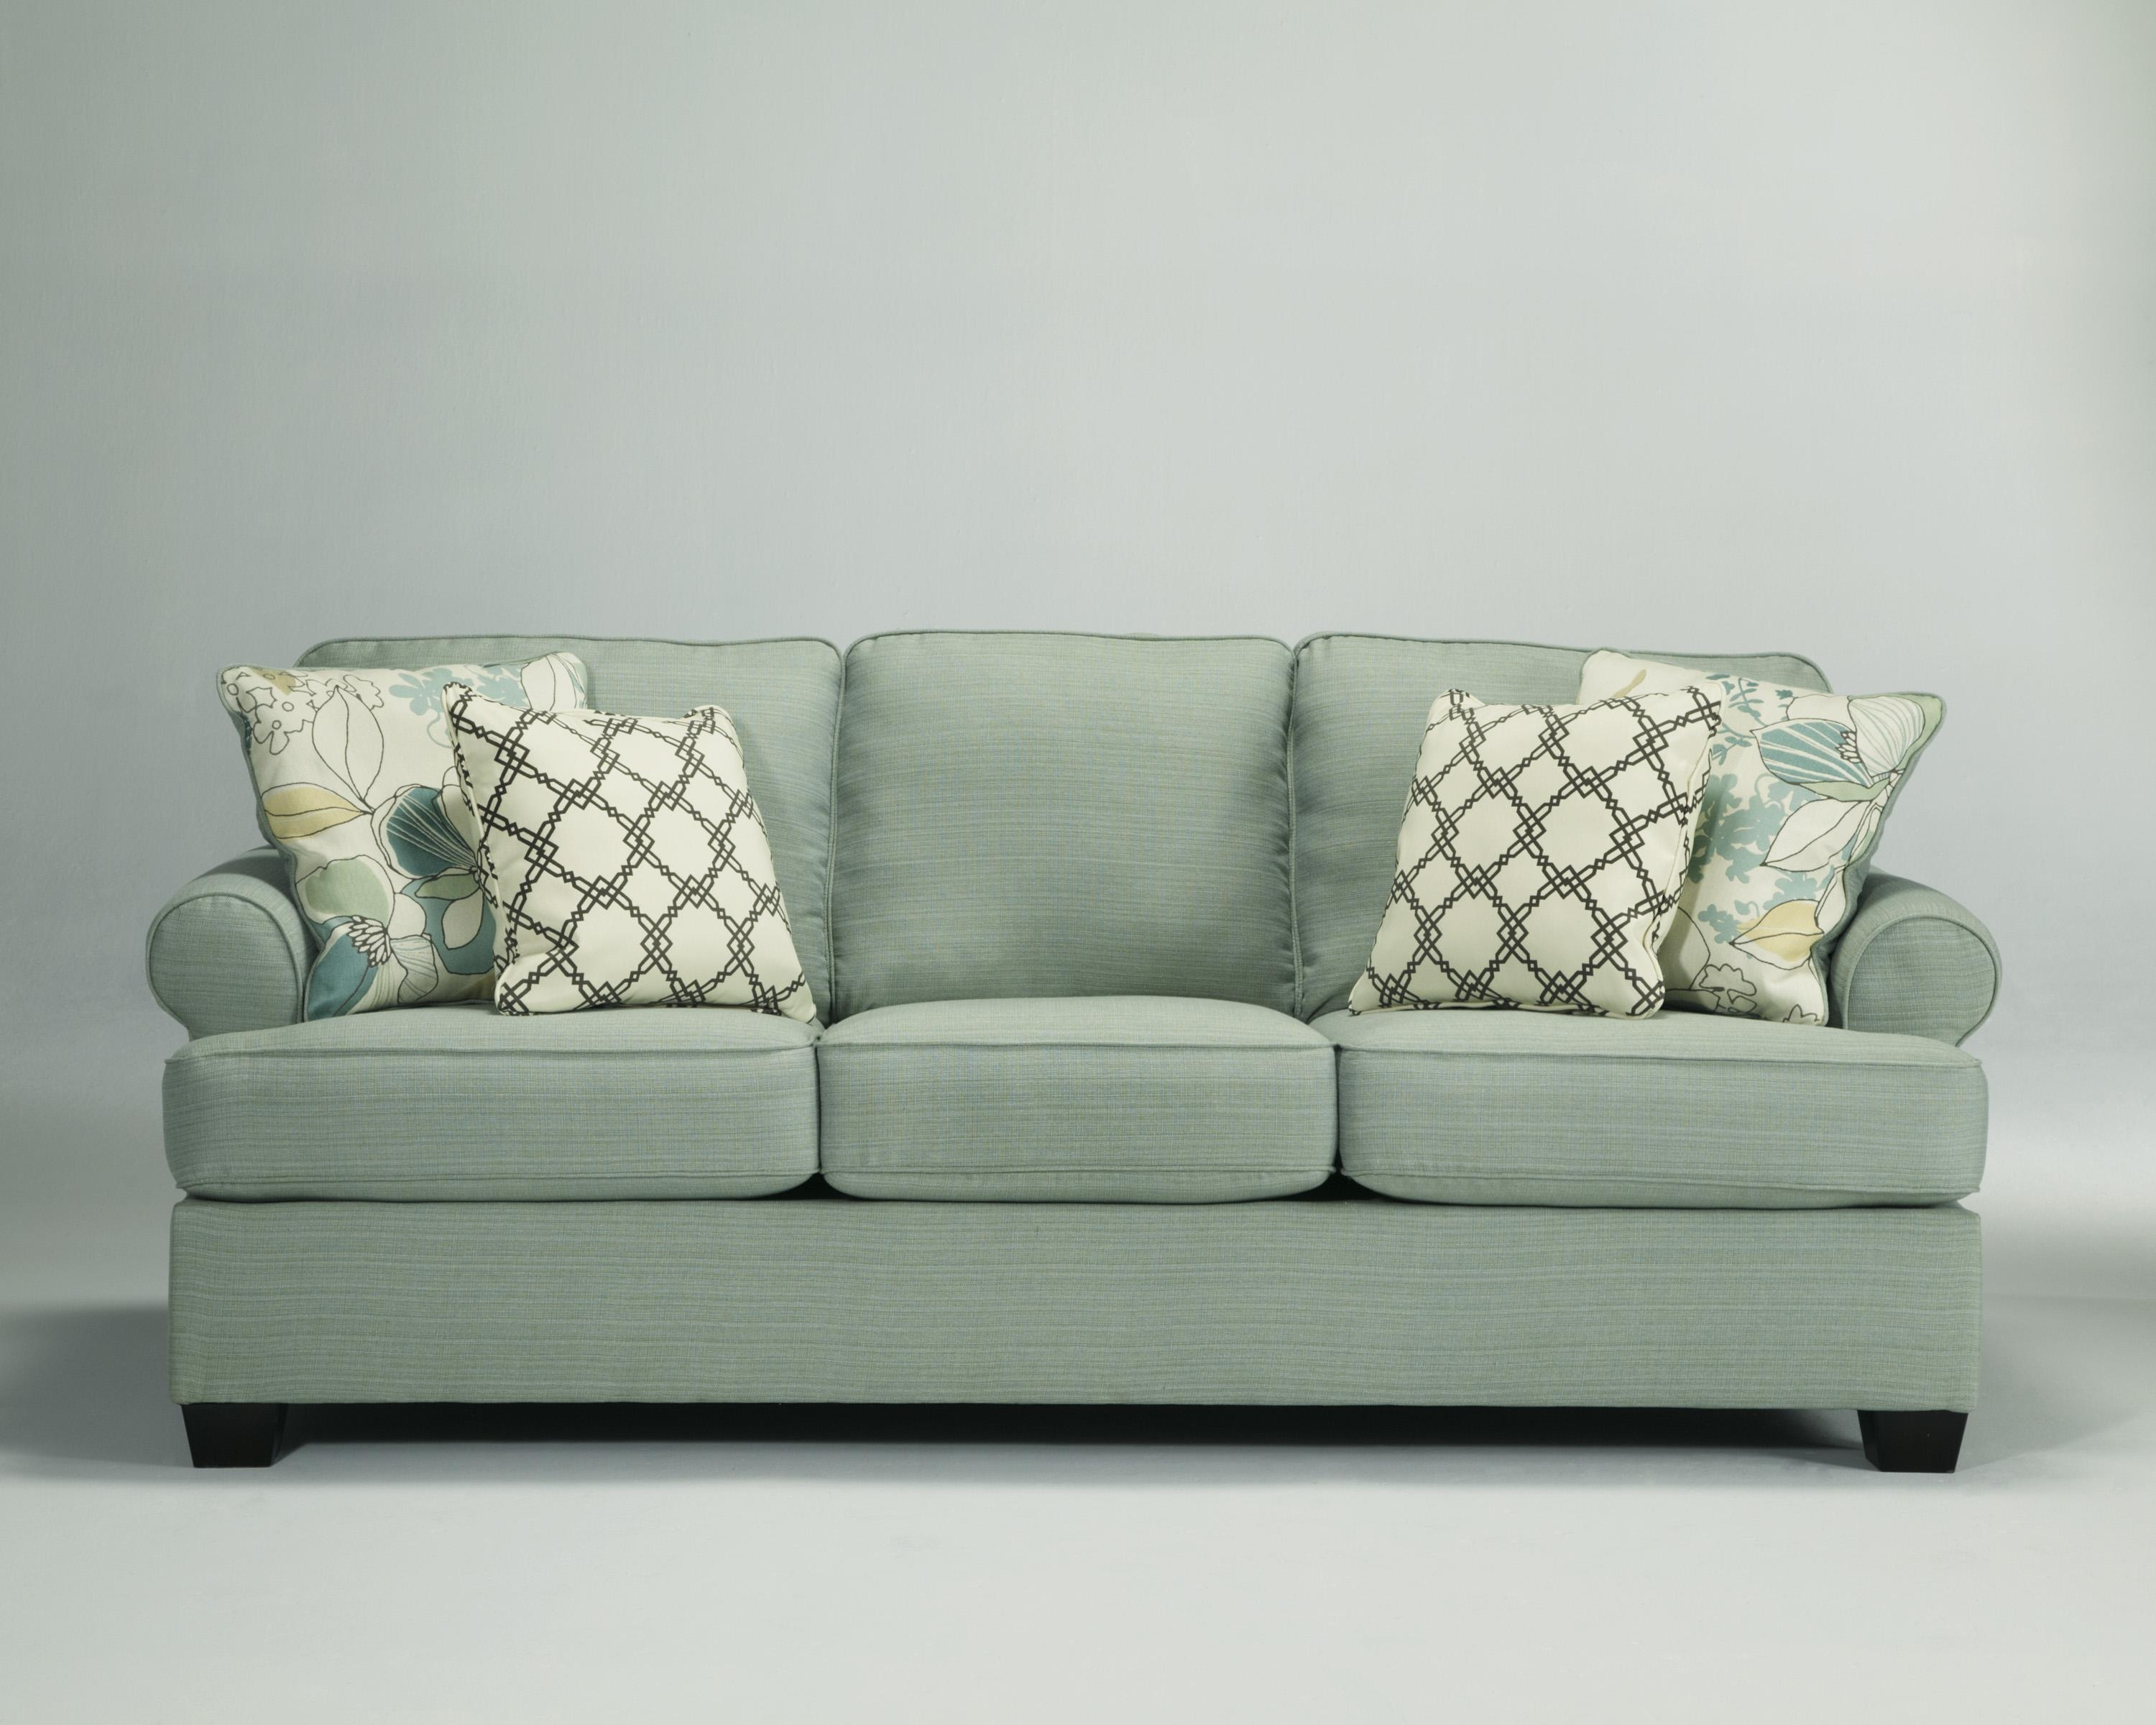 Signature Designashley Daystar Seafoam Queen Sleeper Sofa Inside Seafoam Sofas (View 3 of 20)